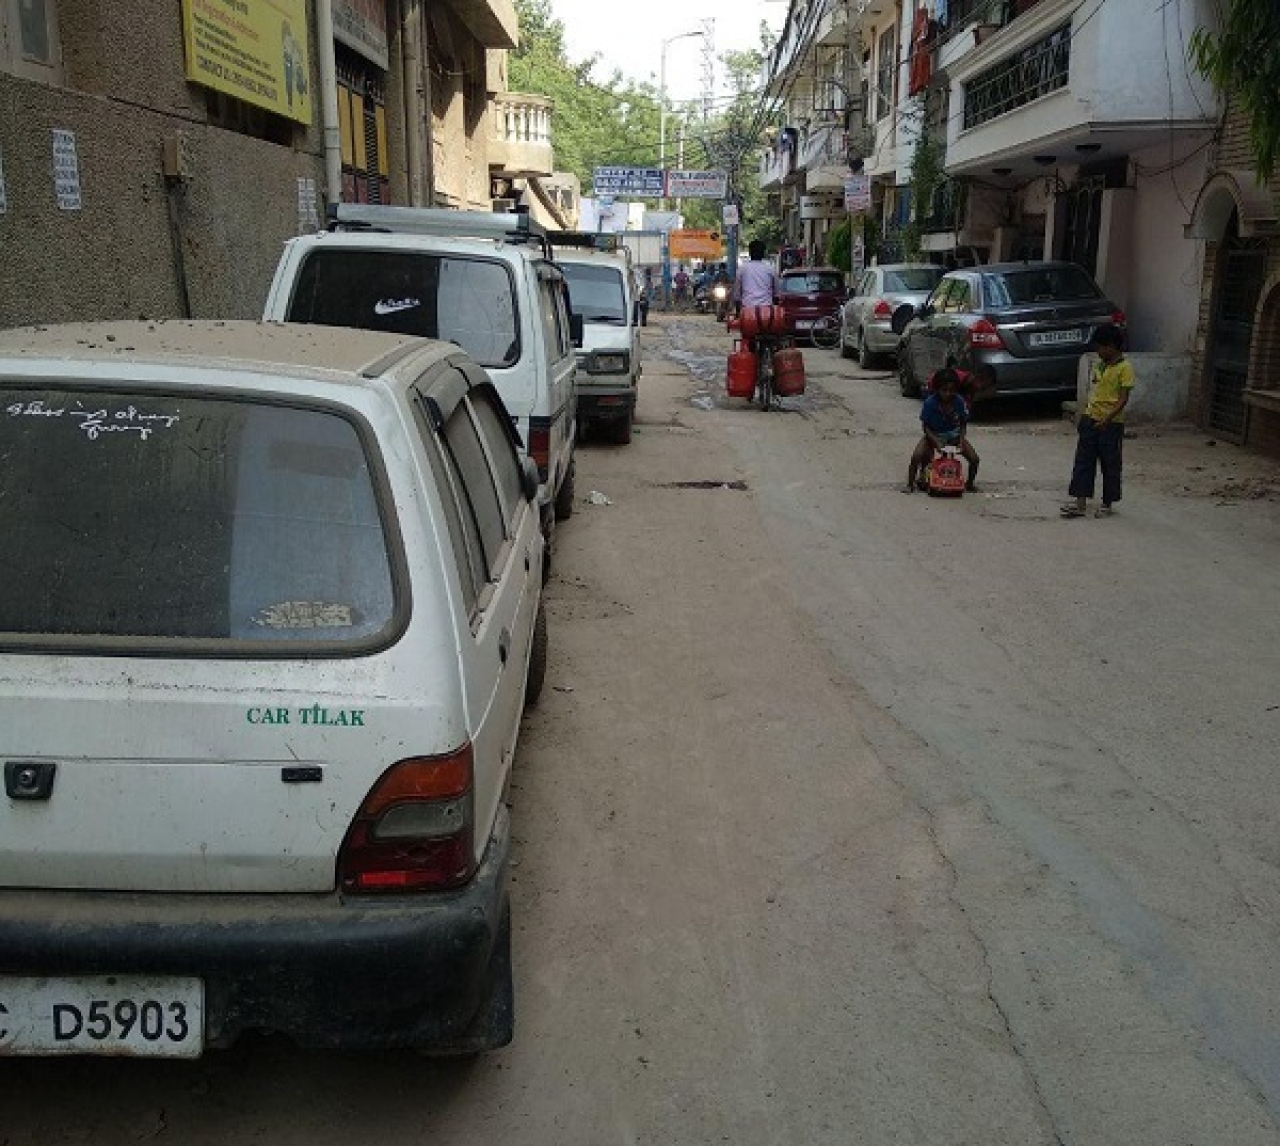 In the absence of parking spaces, most of the cars are parked on streets in residential areas. This is the condition of a colony in Malviya Nagar area in Delhi.